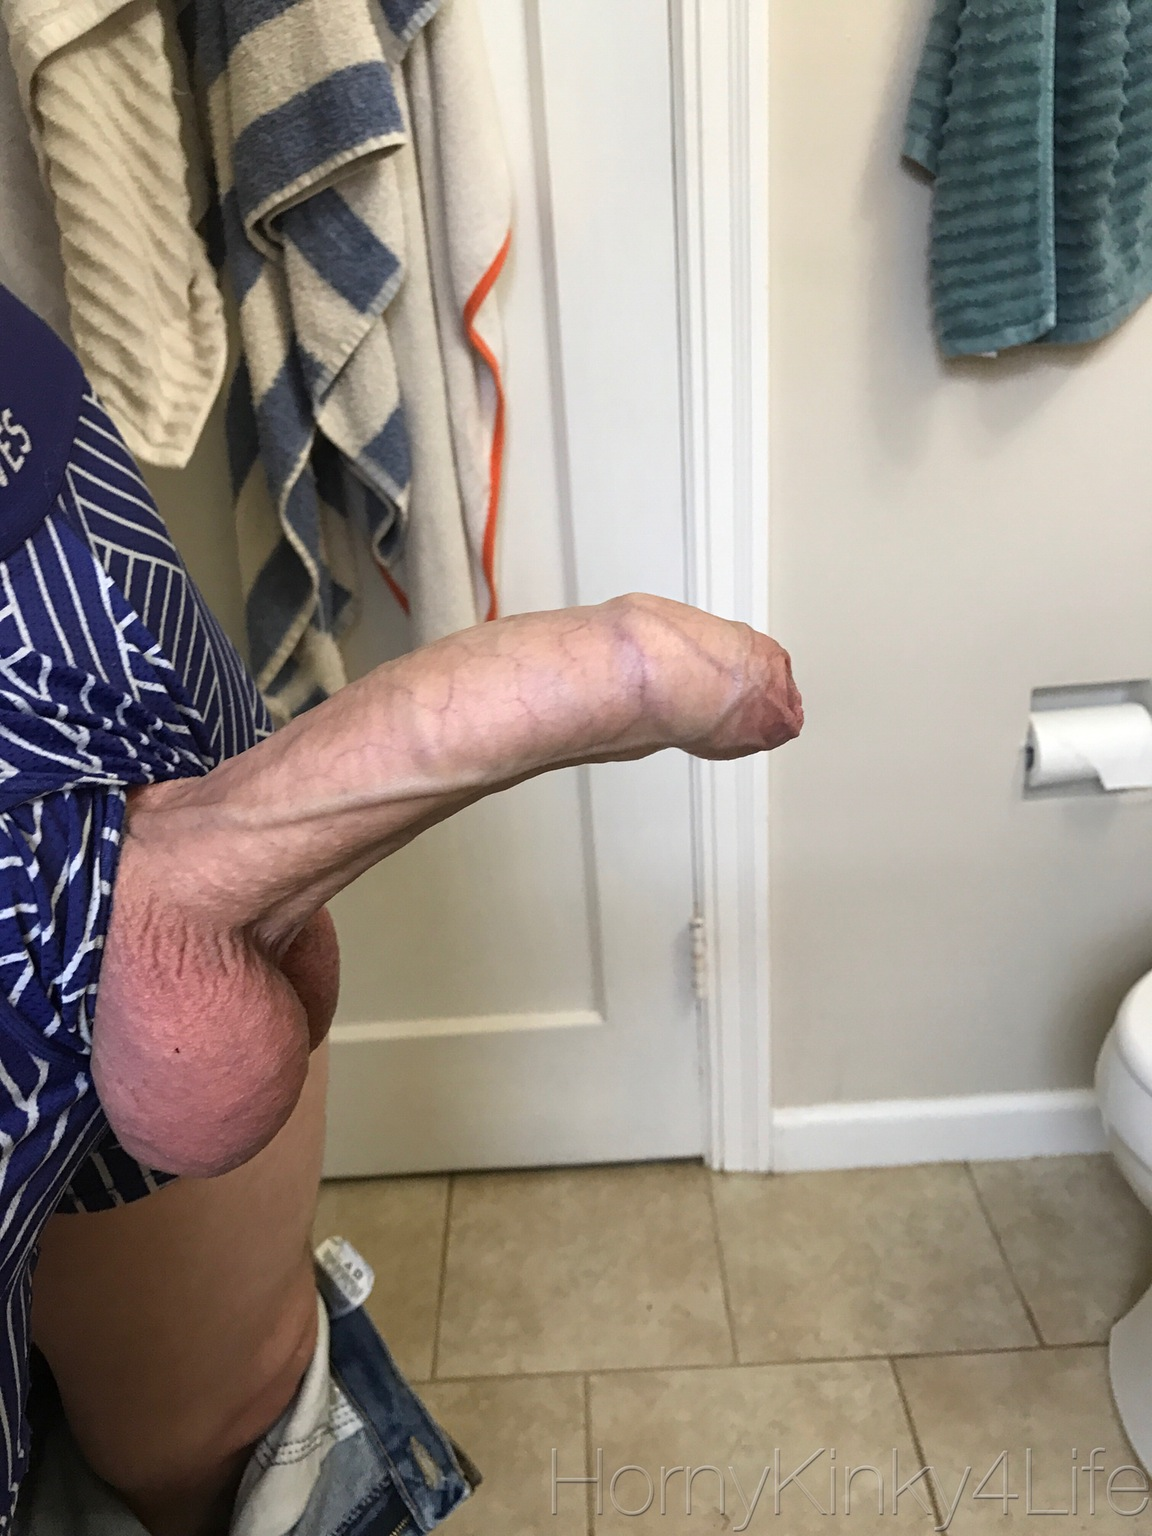 dick out of pants porn